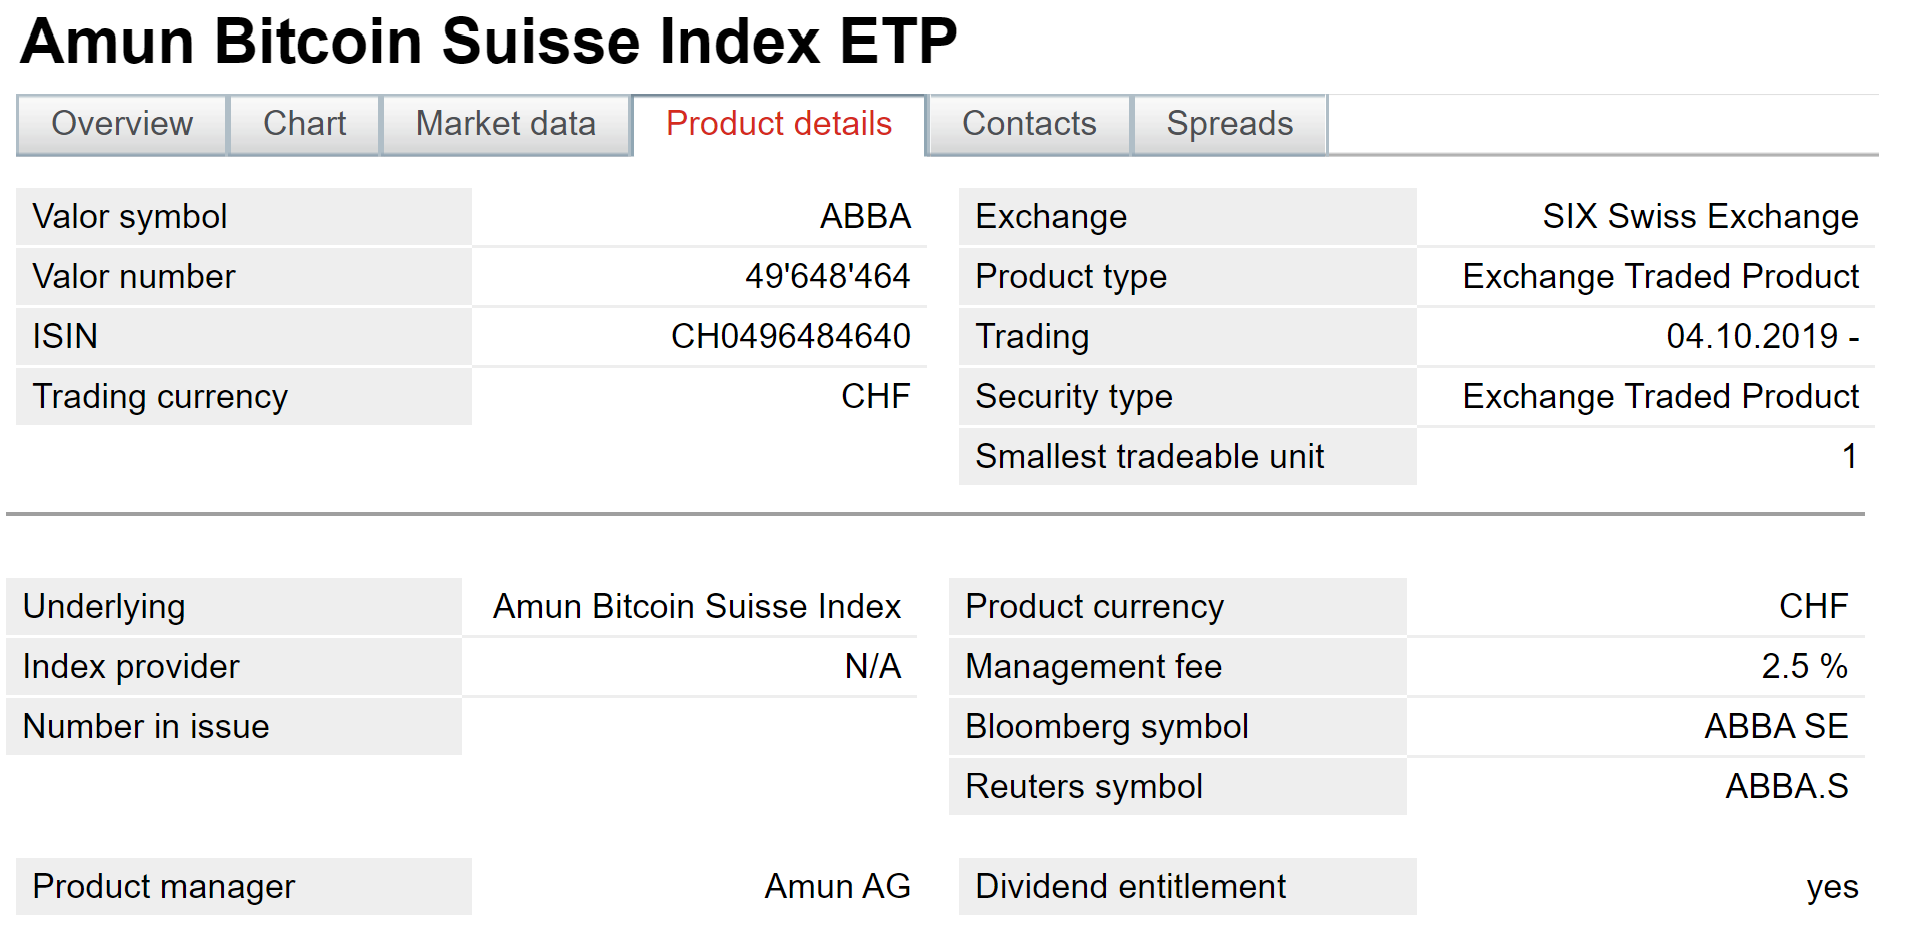 7 Crypto ETPs Now Trading on Main Swiss Stock Exchange